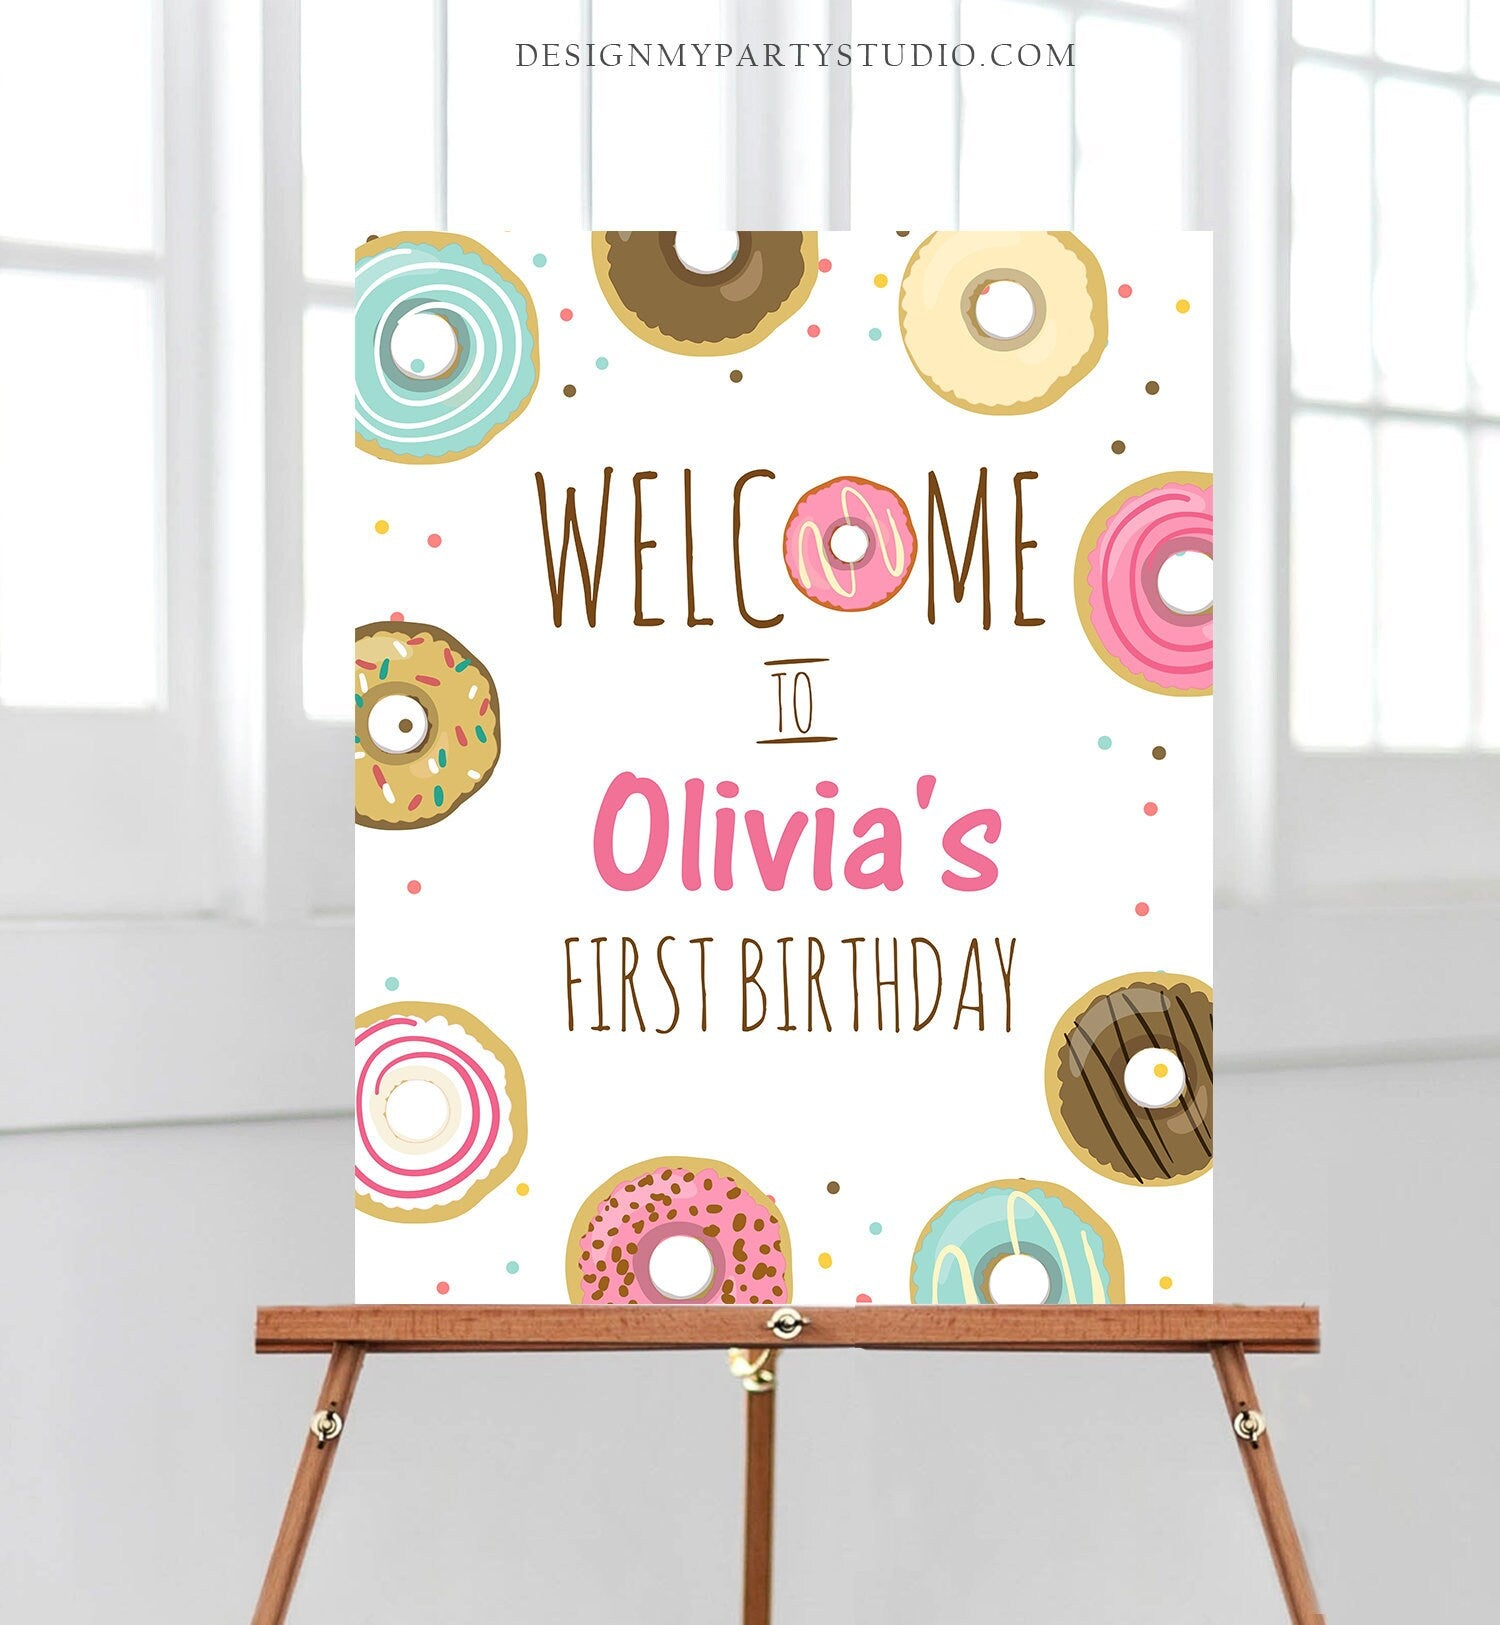 Editable Donut Welcome Sign Donut Birthday Party Pink Girl Doughnut Baby Shower Sprinkle Table Sign Download Corjl Template Printable 0050